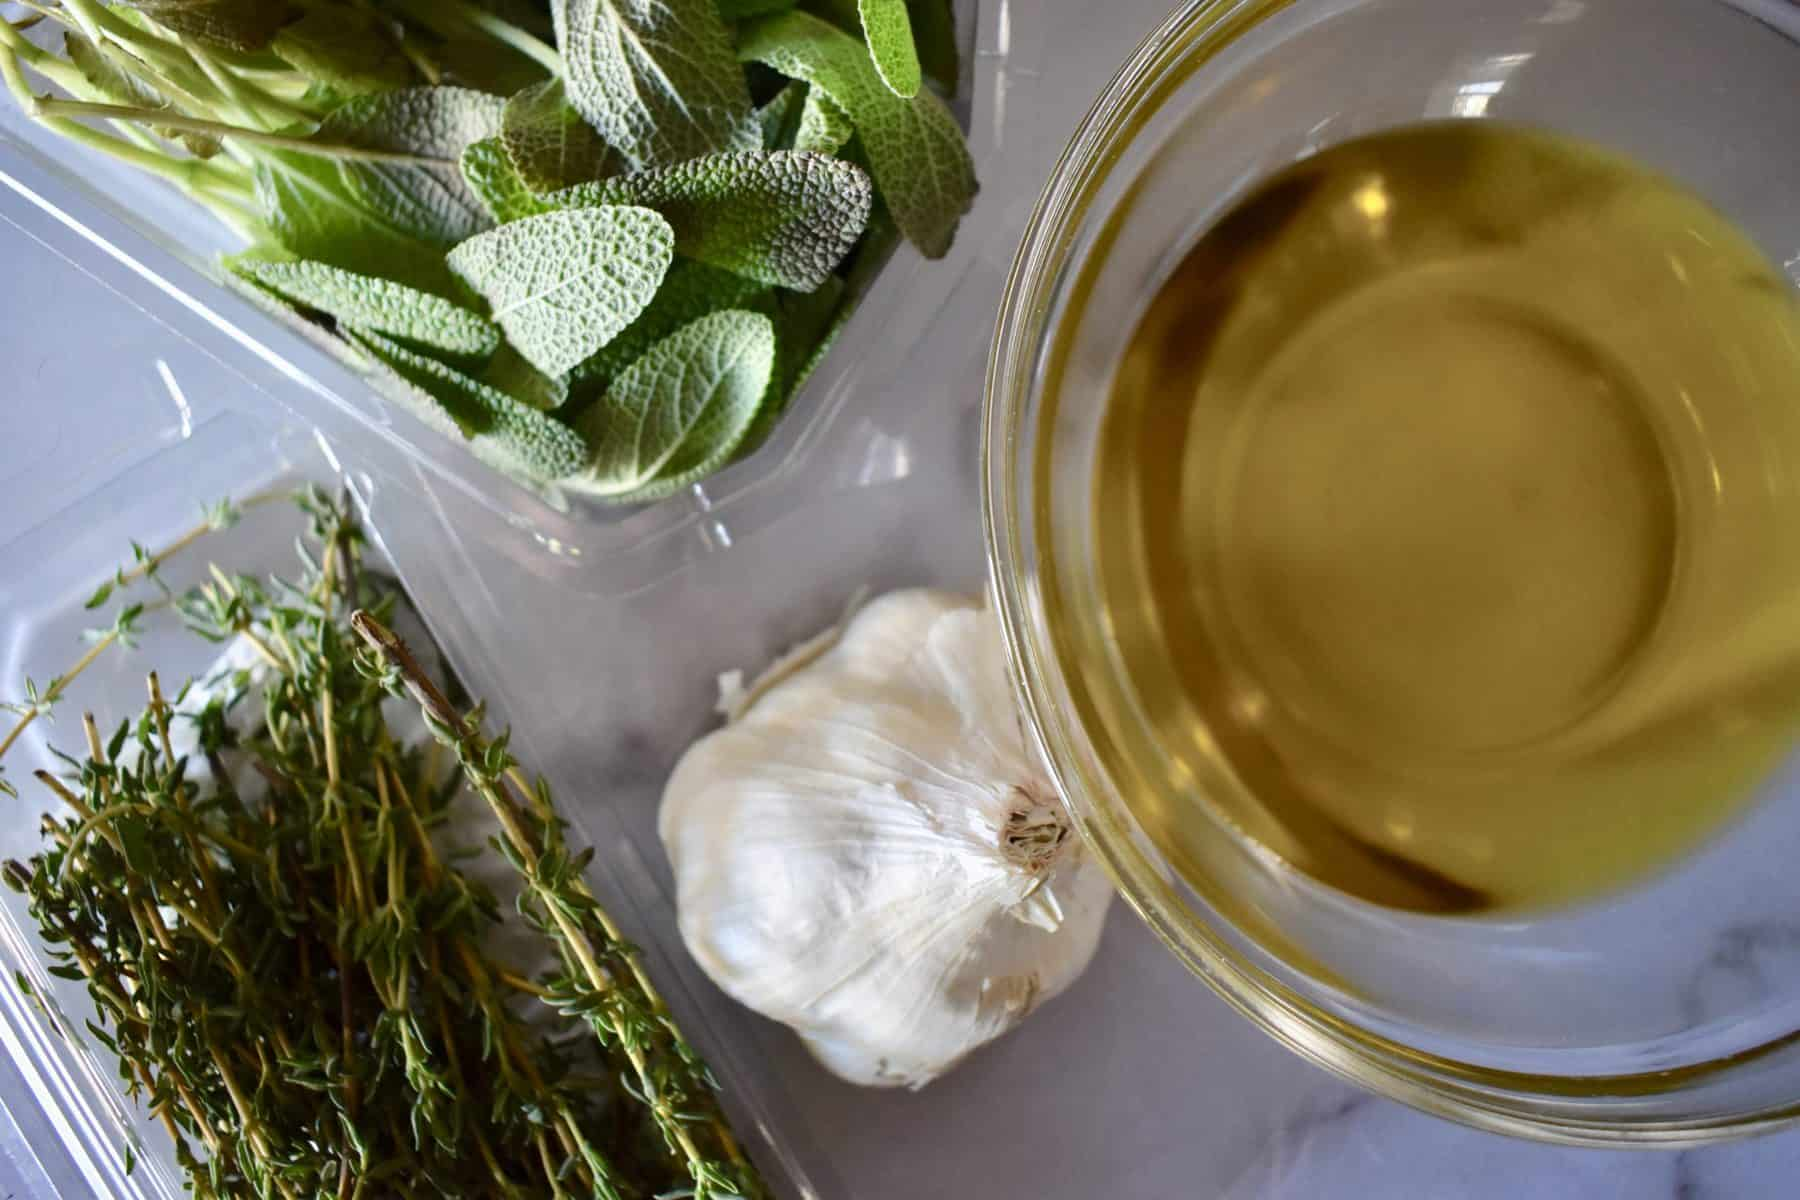 Garlic, thyme, sage, and olive oil on a countertop.